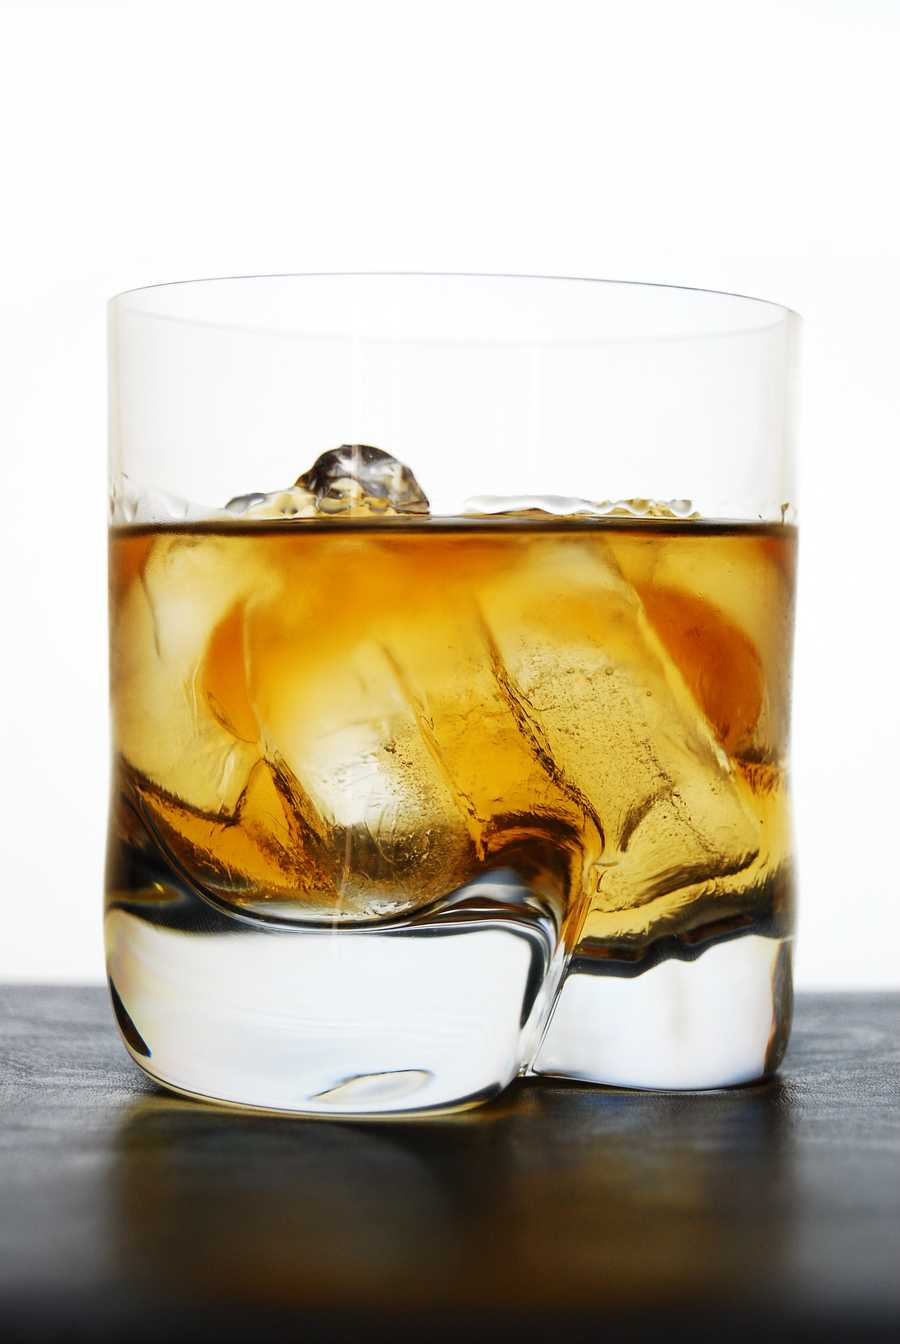 2. Only have 1 drink a day: A direct relationship between alcohol and coronary artery disease has not been established, but studies show that drinking more than seven drinks a week increases a woman's risk for heart disease.